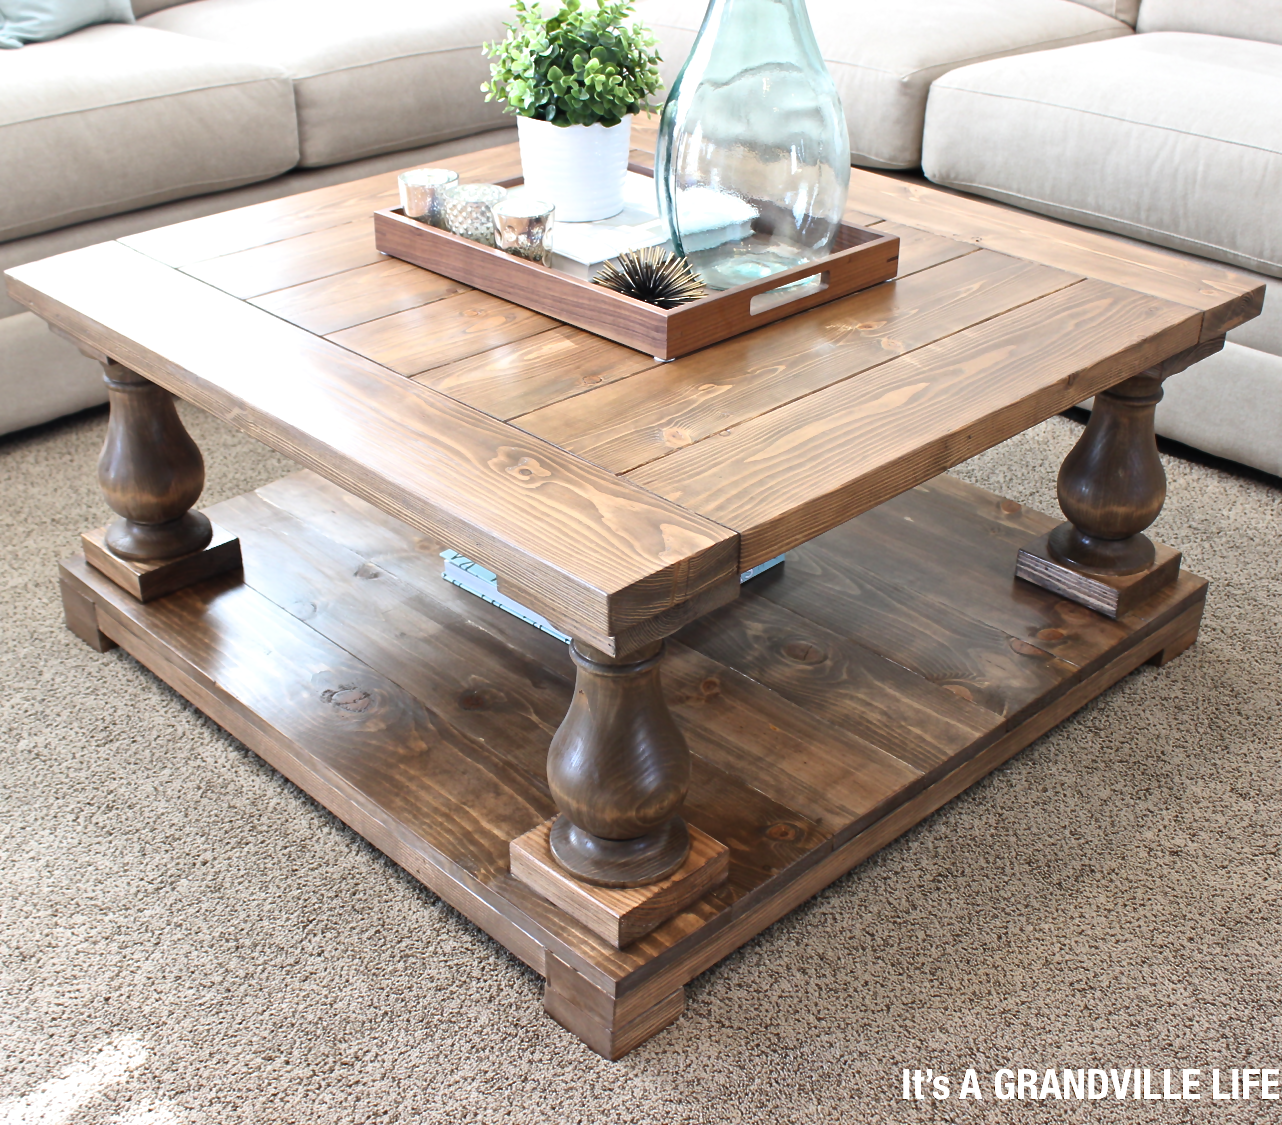 It's A Grandville Life : DIY Balustrade Coffee Table